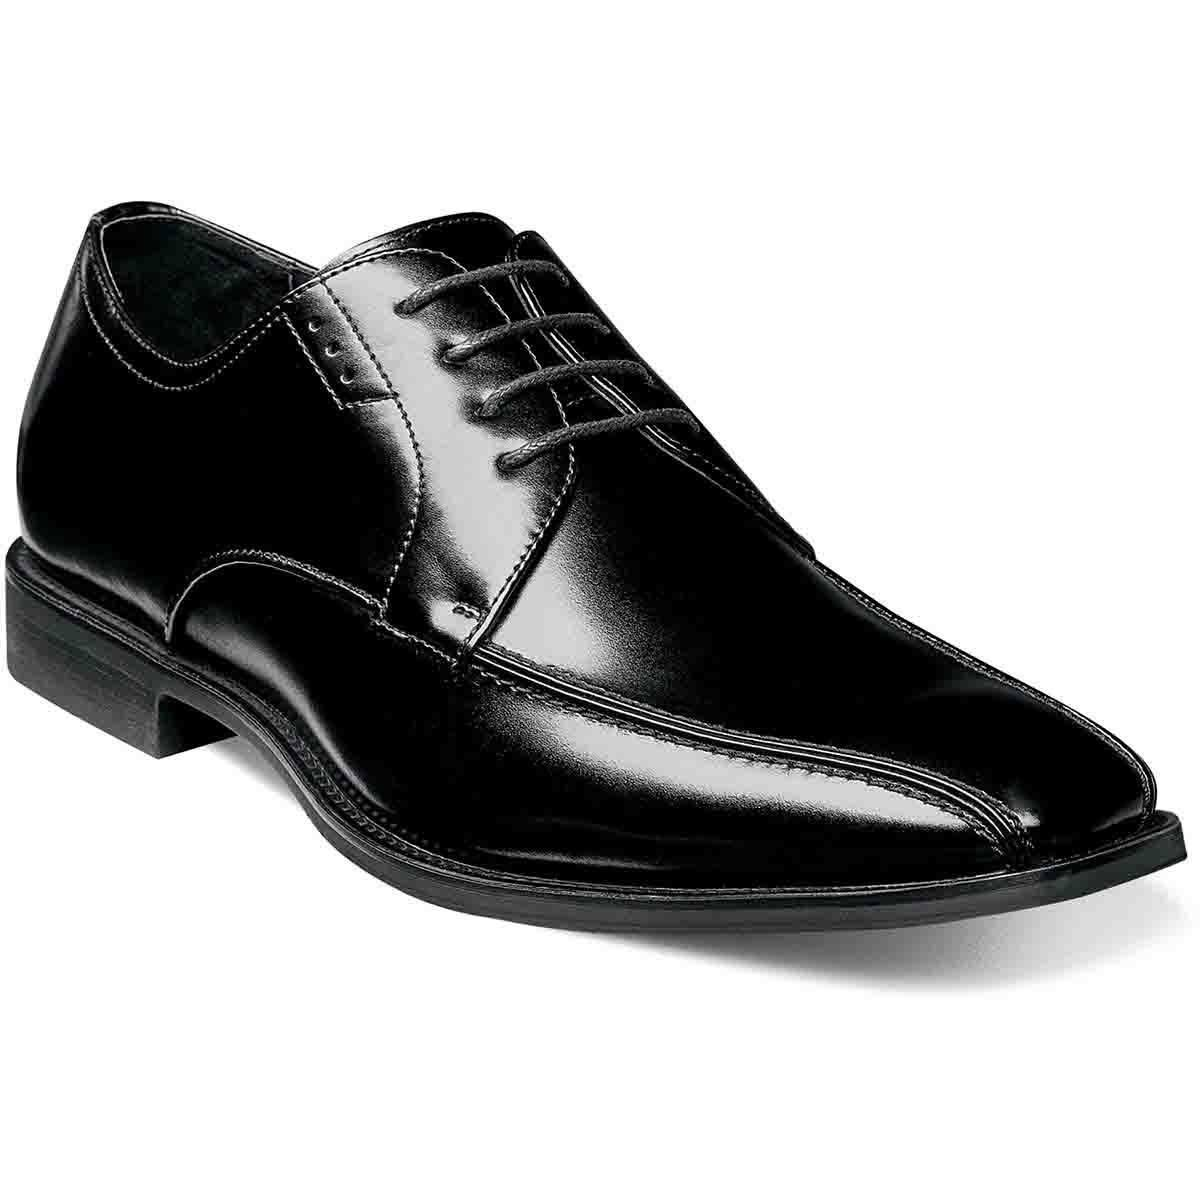 Stacy Adams Men's Logan Oxford -Black